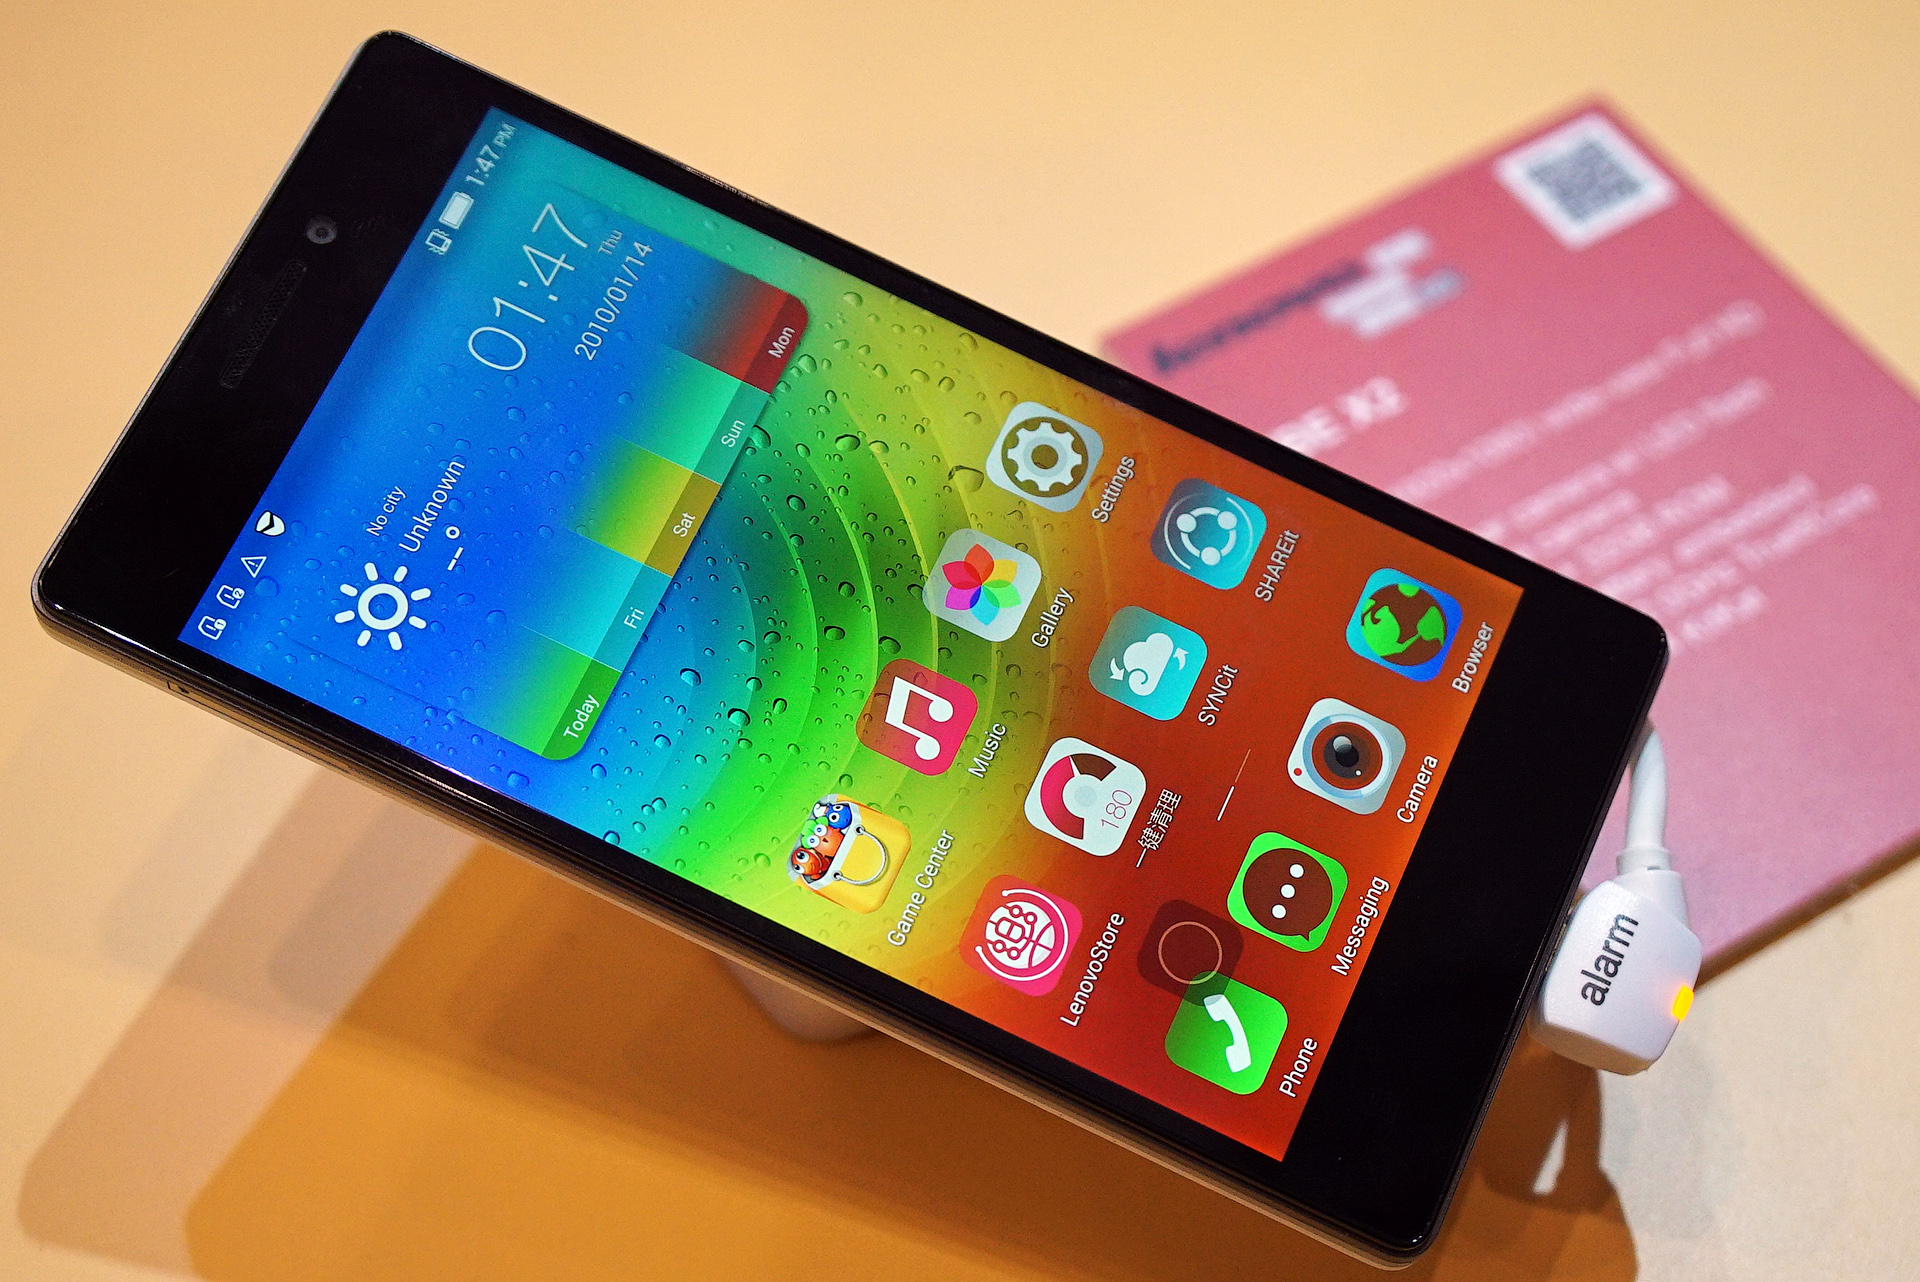 Lenovo-Vibe-X2-High-Resolution-IMage